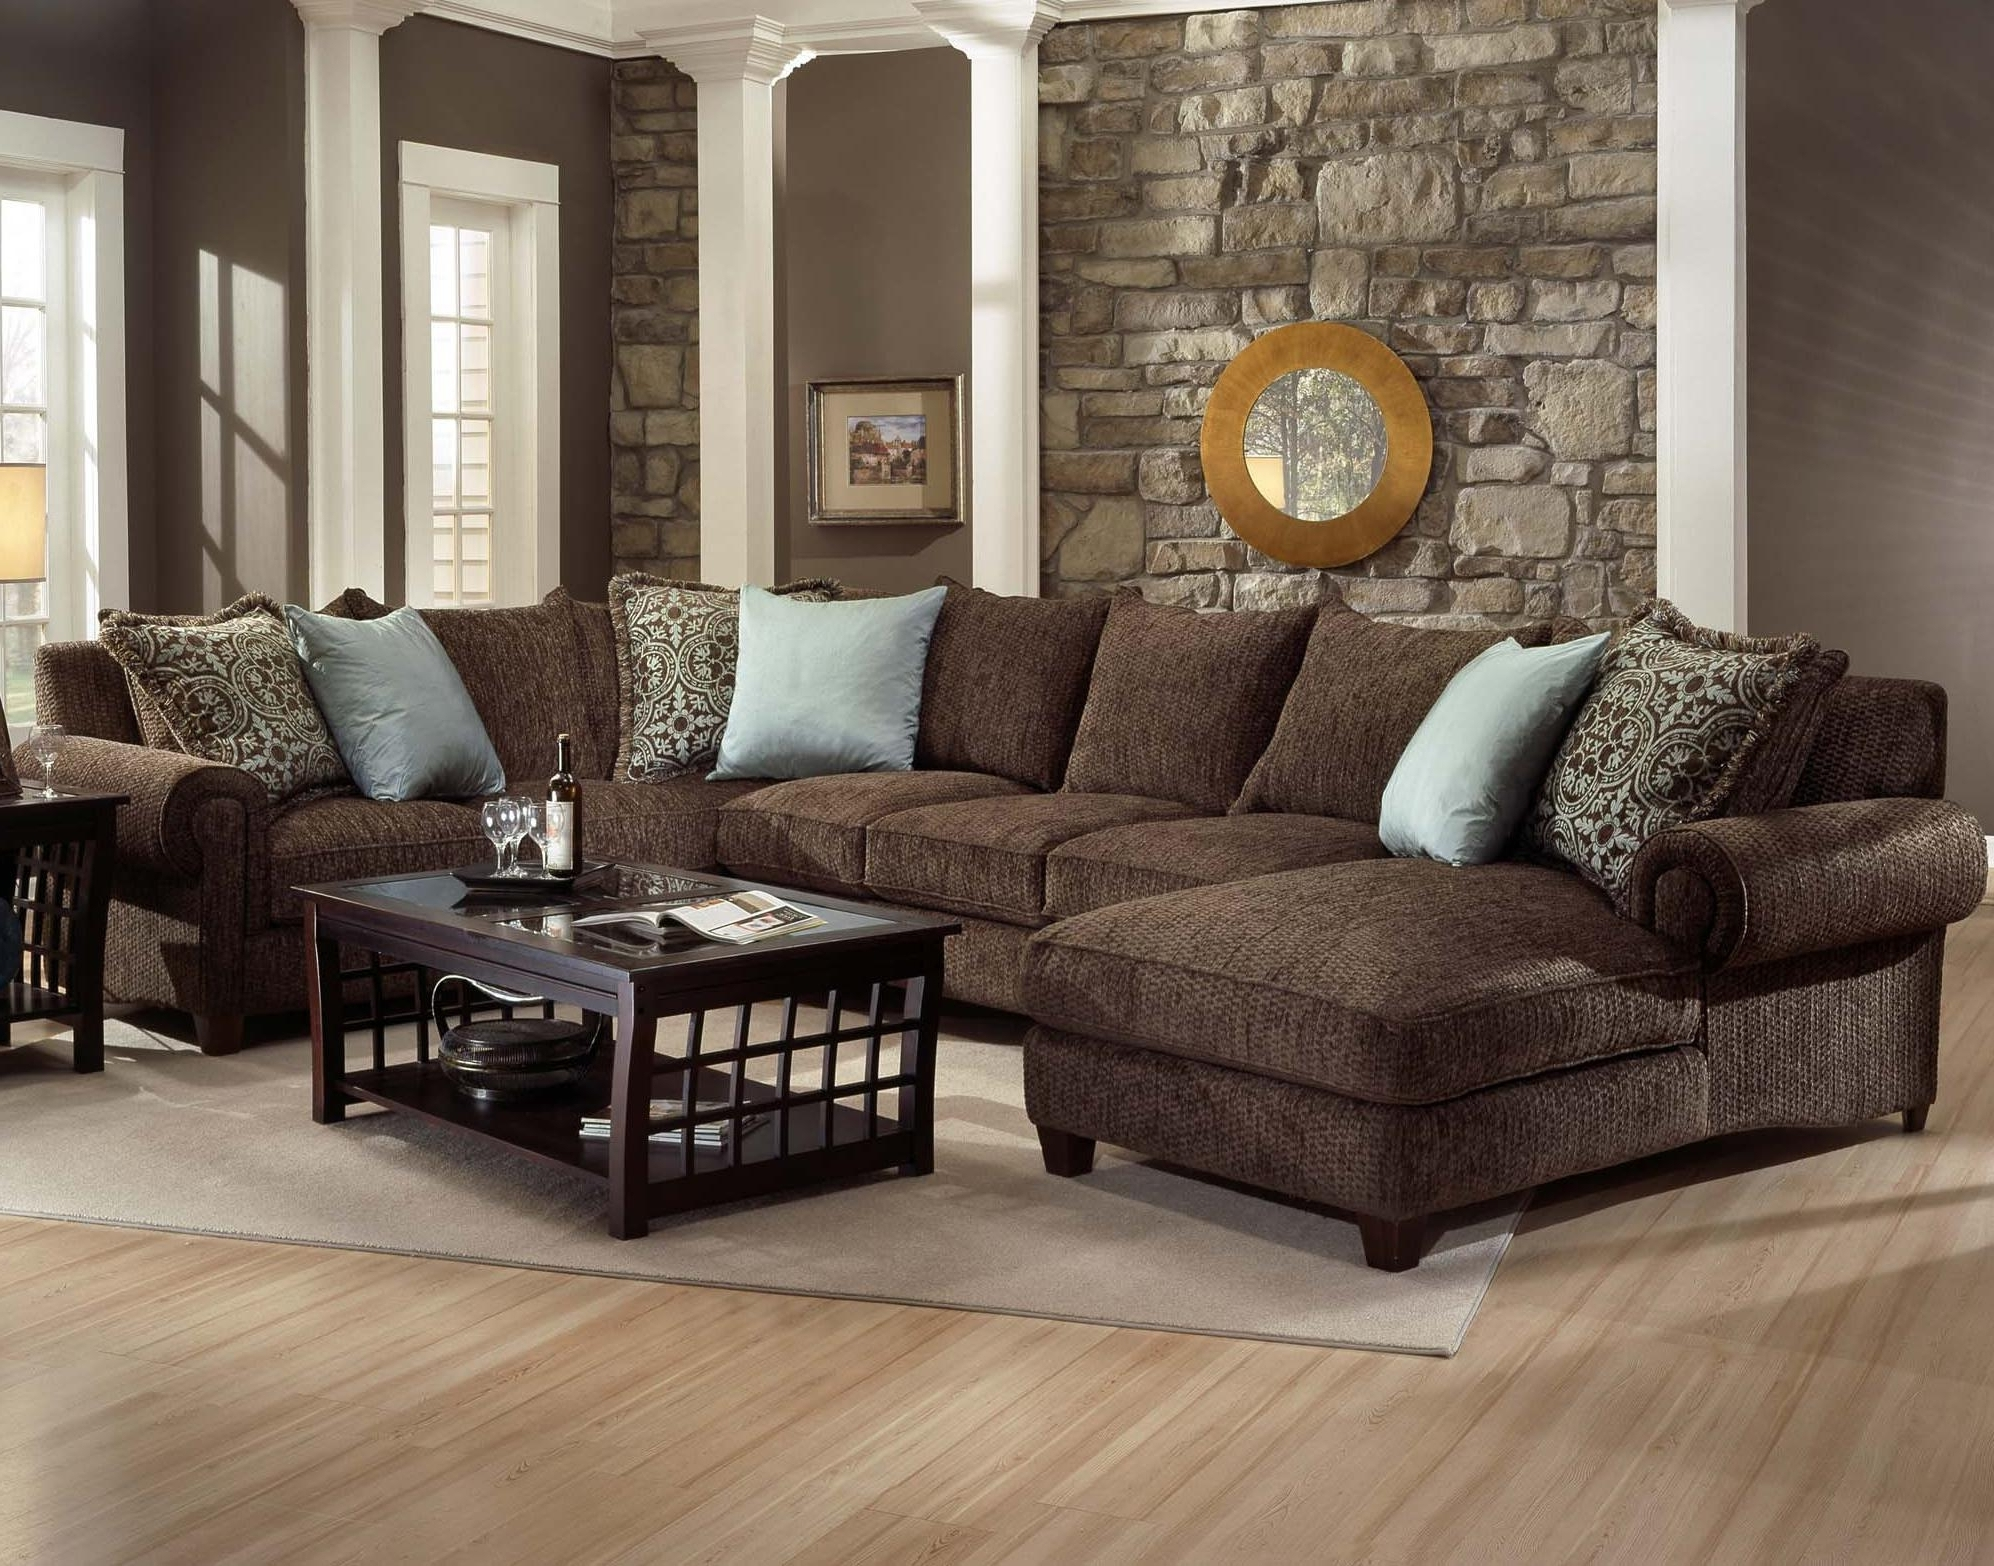 Preferred 73 Wonderful Jcpenney Sectional Sofa Home Design (View 14 of 15)